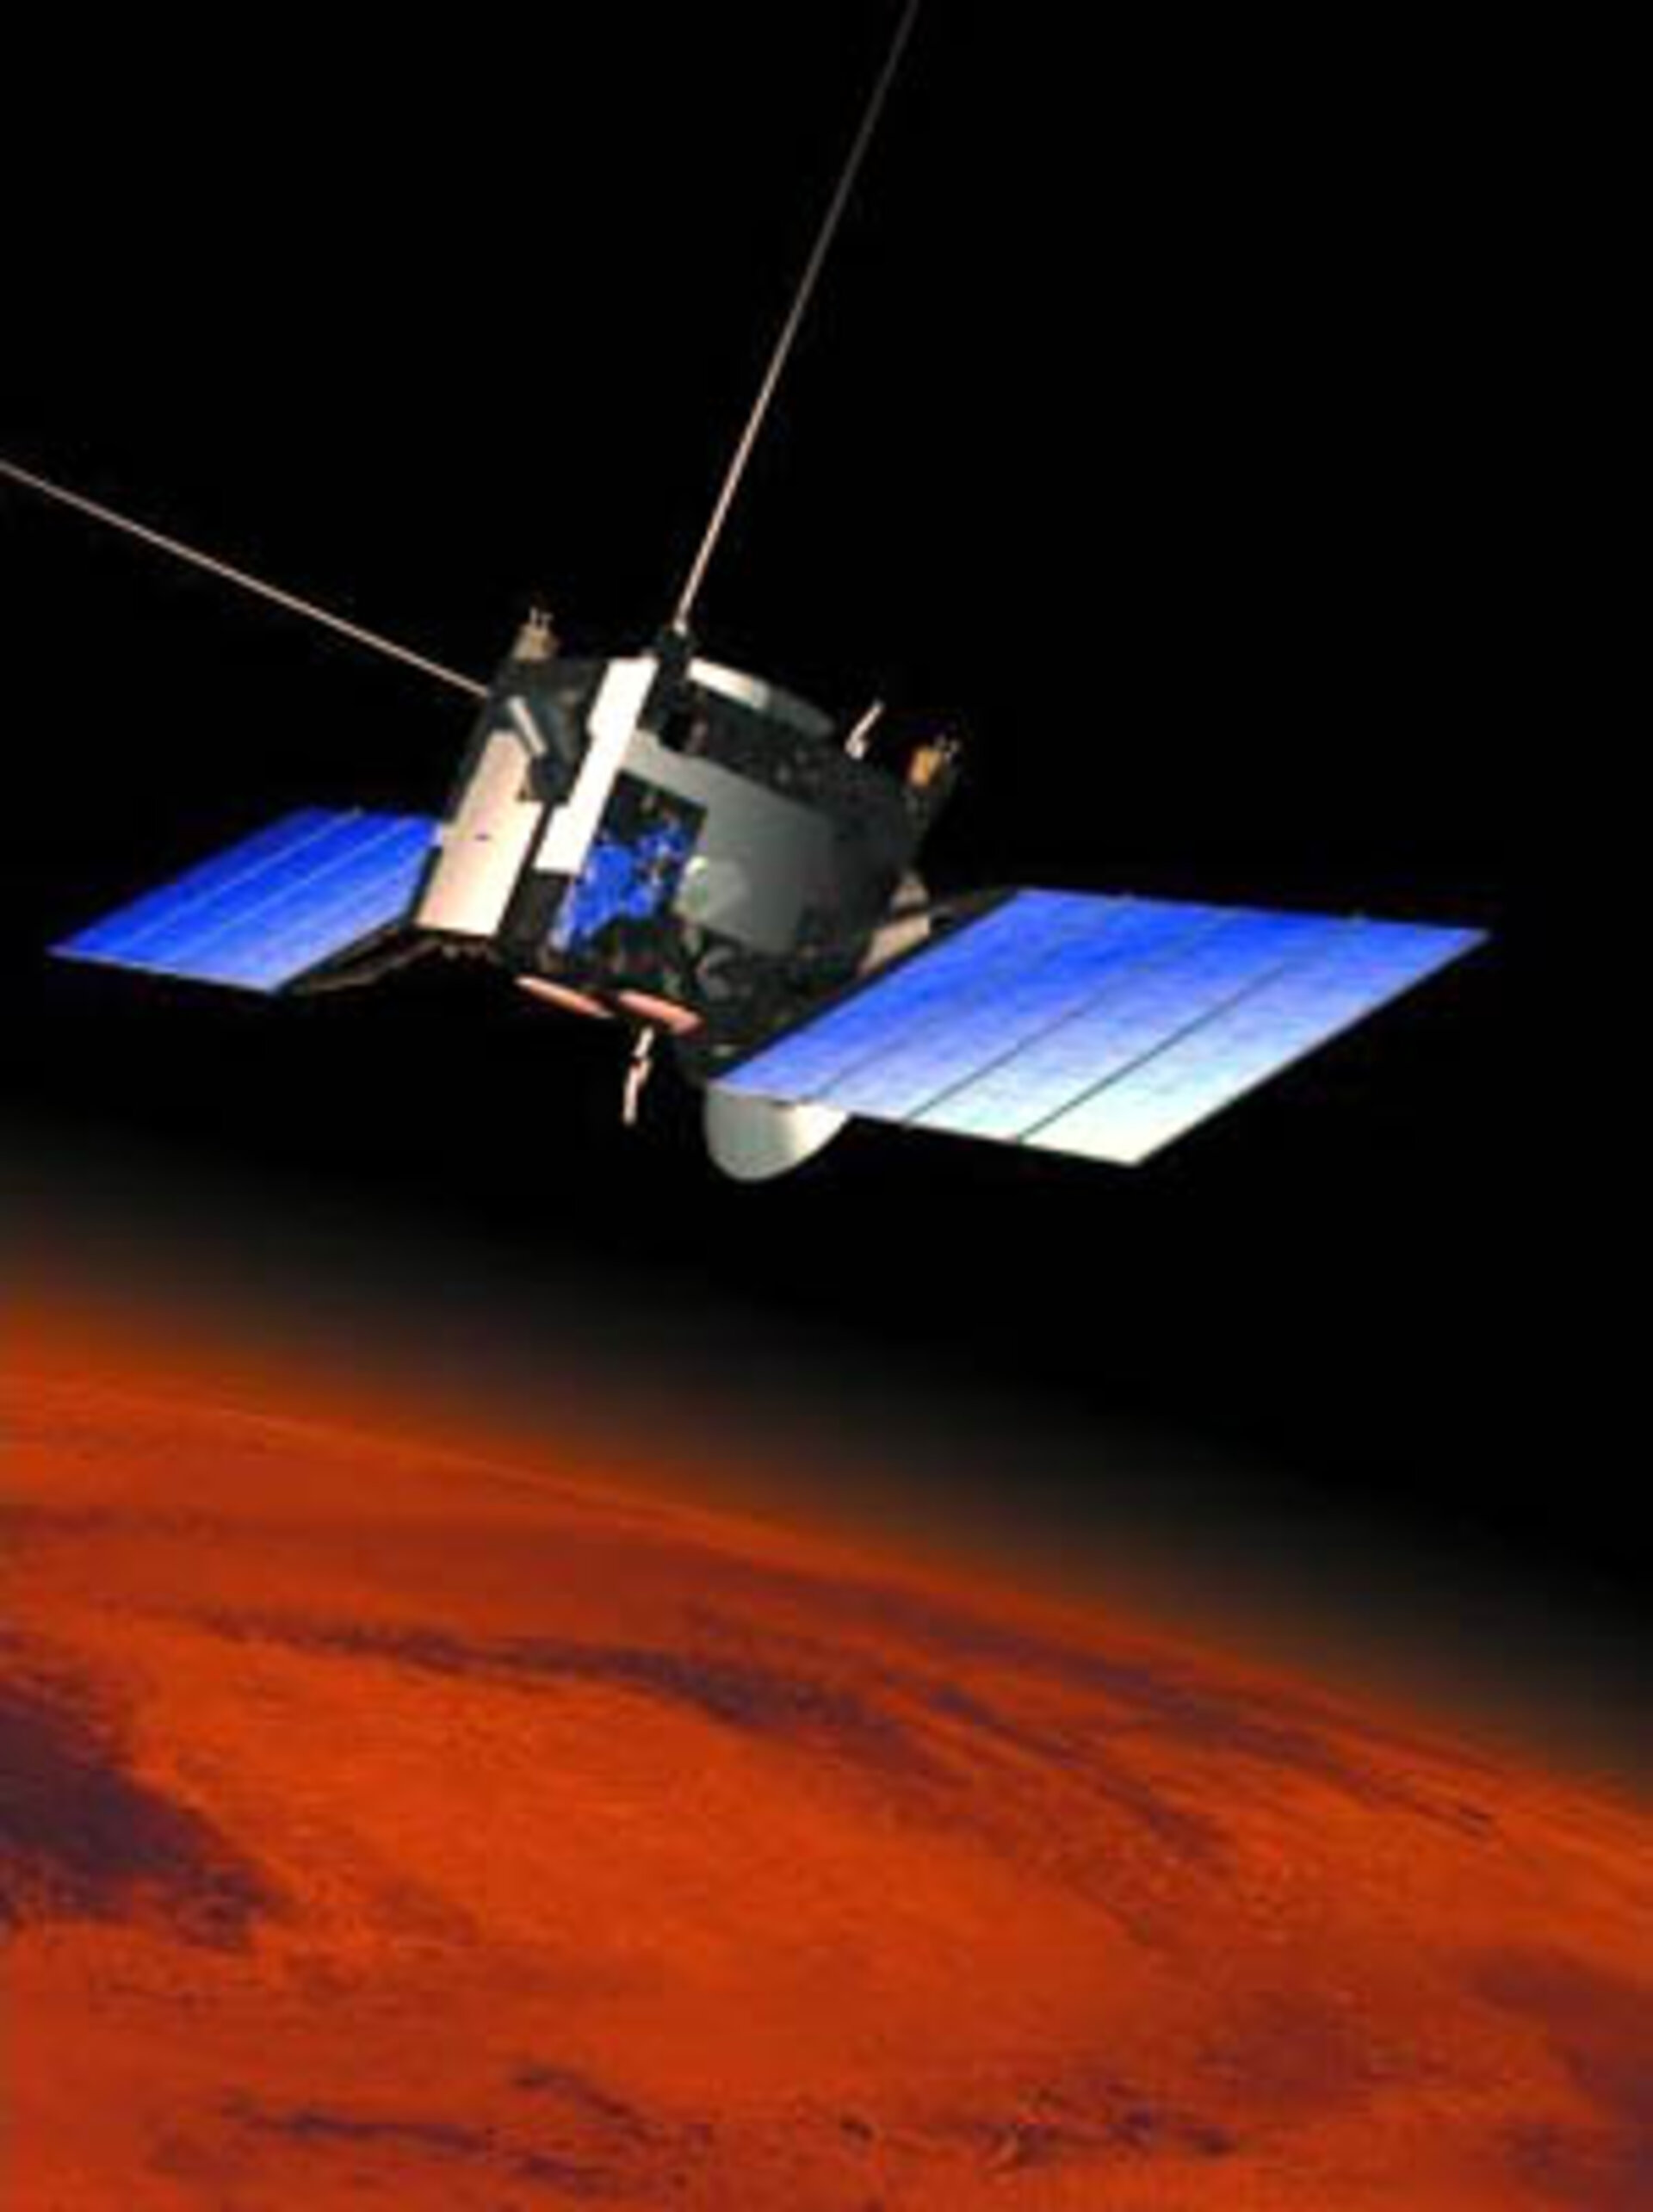 The Mars Express spacecraft in orbit around Mars